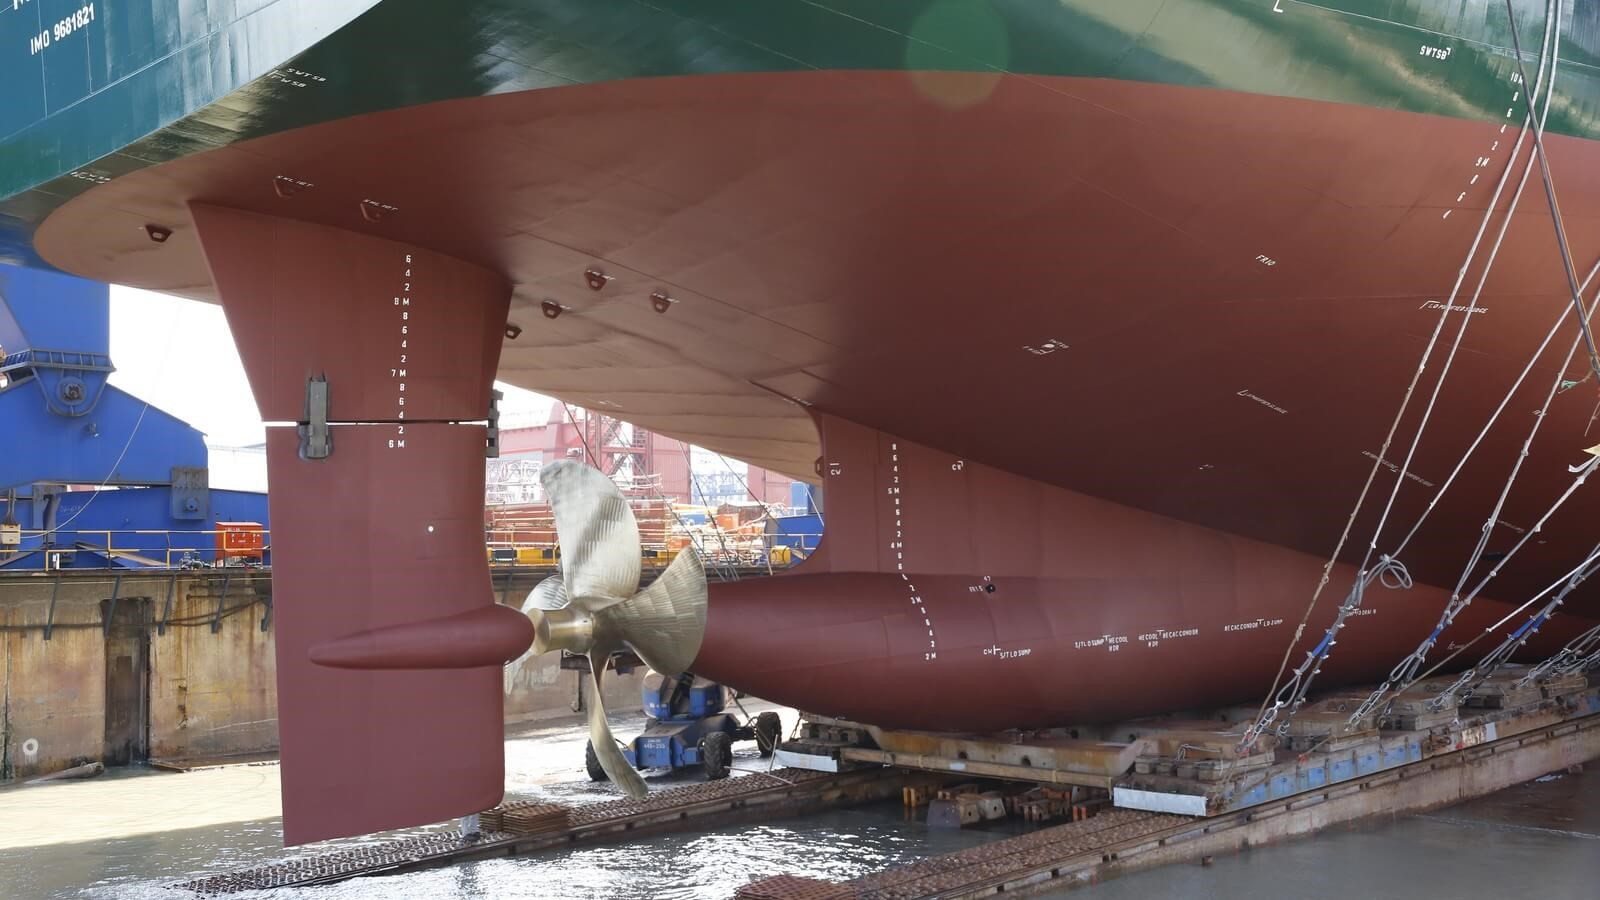 ESPAC rudder is well adapted to the propeller's slipstream and so reduces energy losses